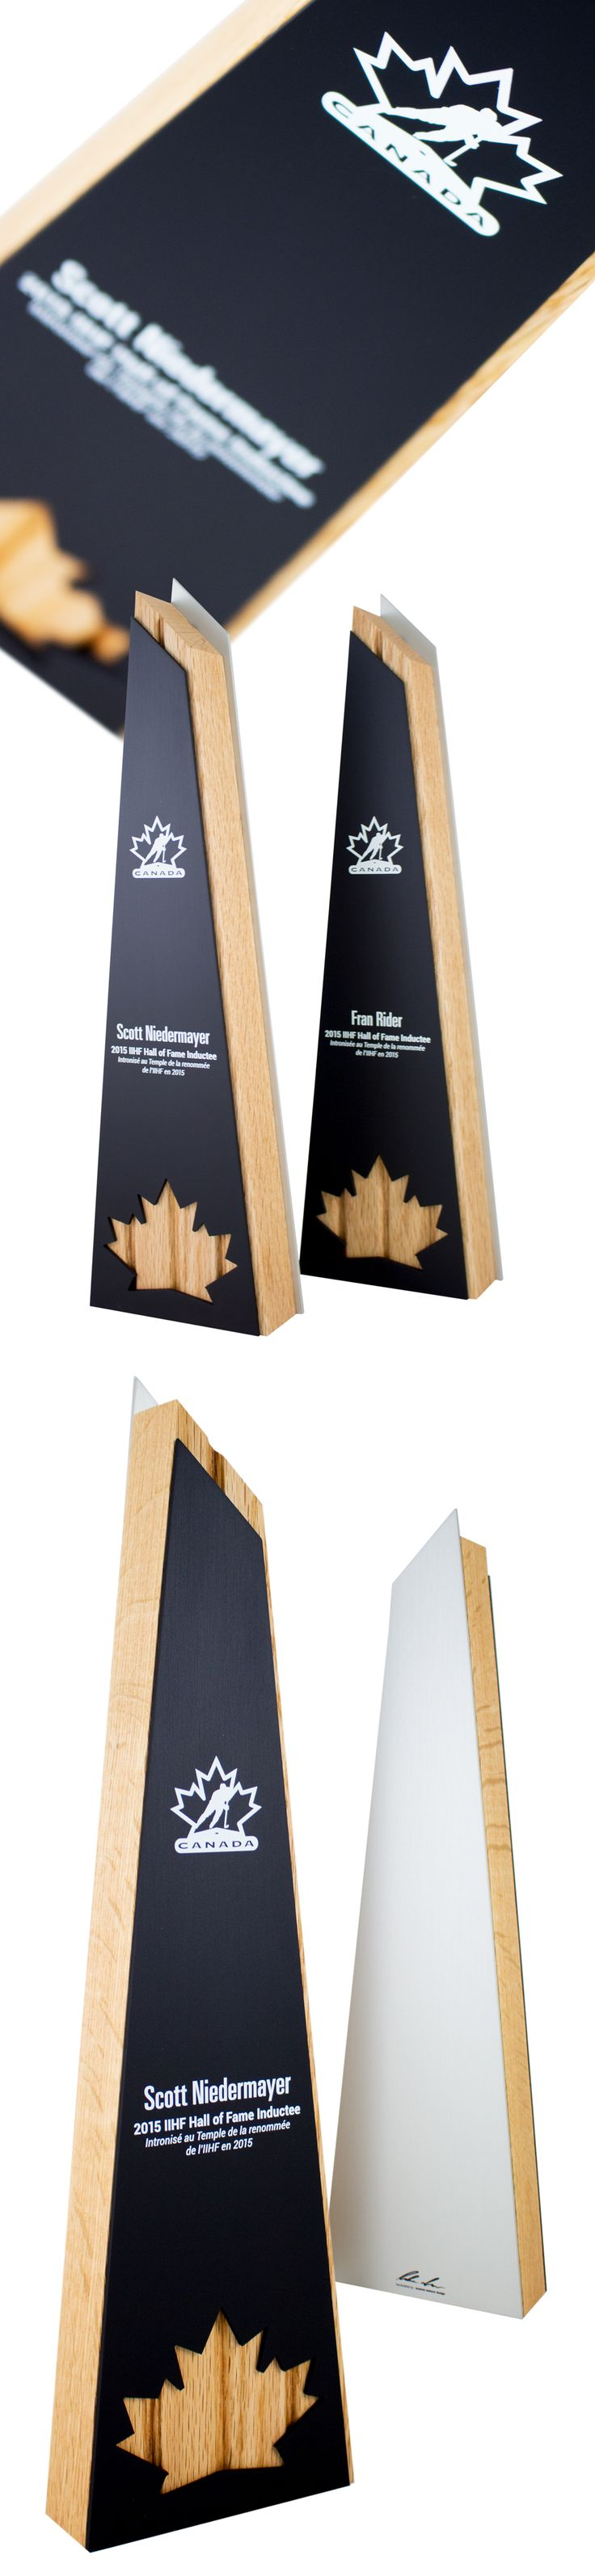 "This project was a commission from Hockey Canada. We were requested to design a hall of fame award for their new inductees. The idea behind the design was to use the shape of 4 hockey stick handles and create the award around that size. The four sticks can be seen through the maple leaf relief cut, designed as a ""peekaboo"" detail. The wood was then affixed in-between two water jet cut aluminum panels. A modern design that is simple and elegant."